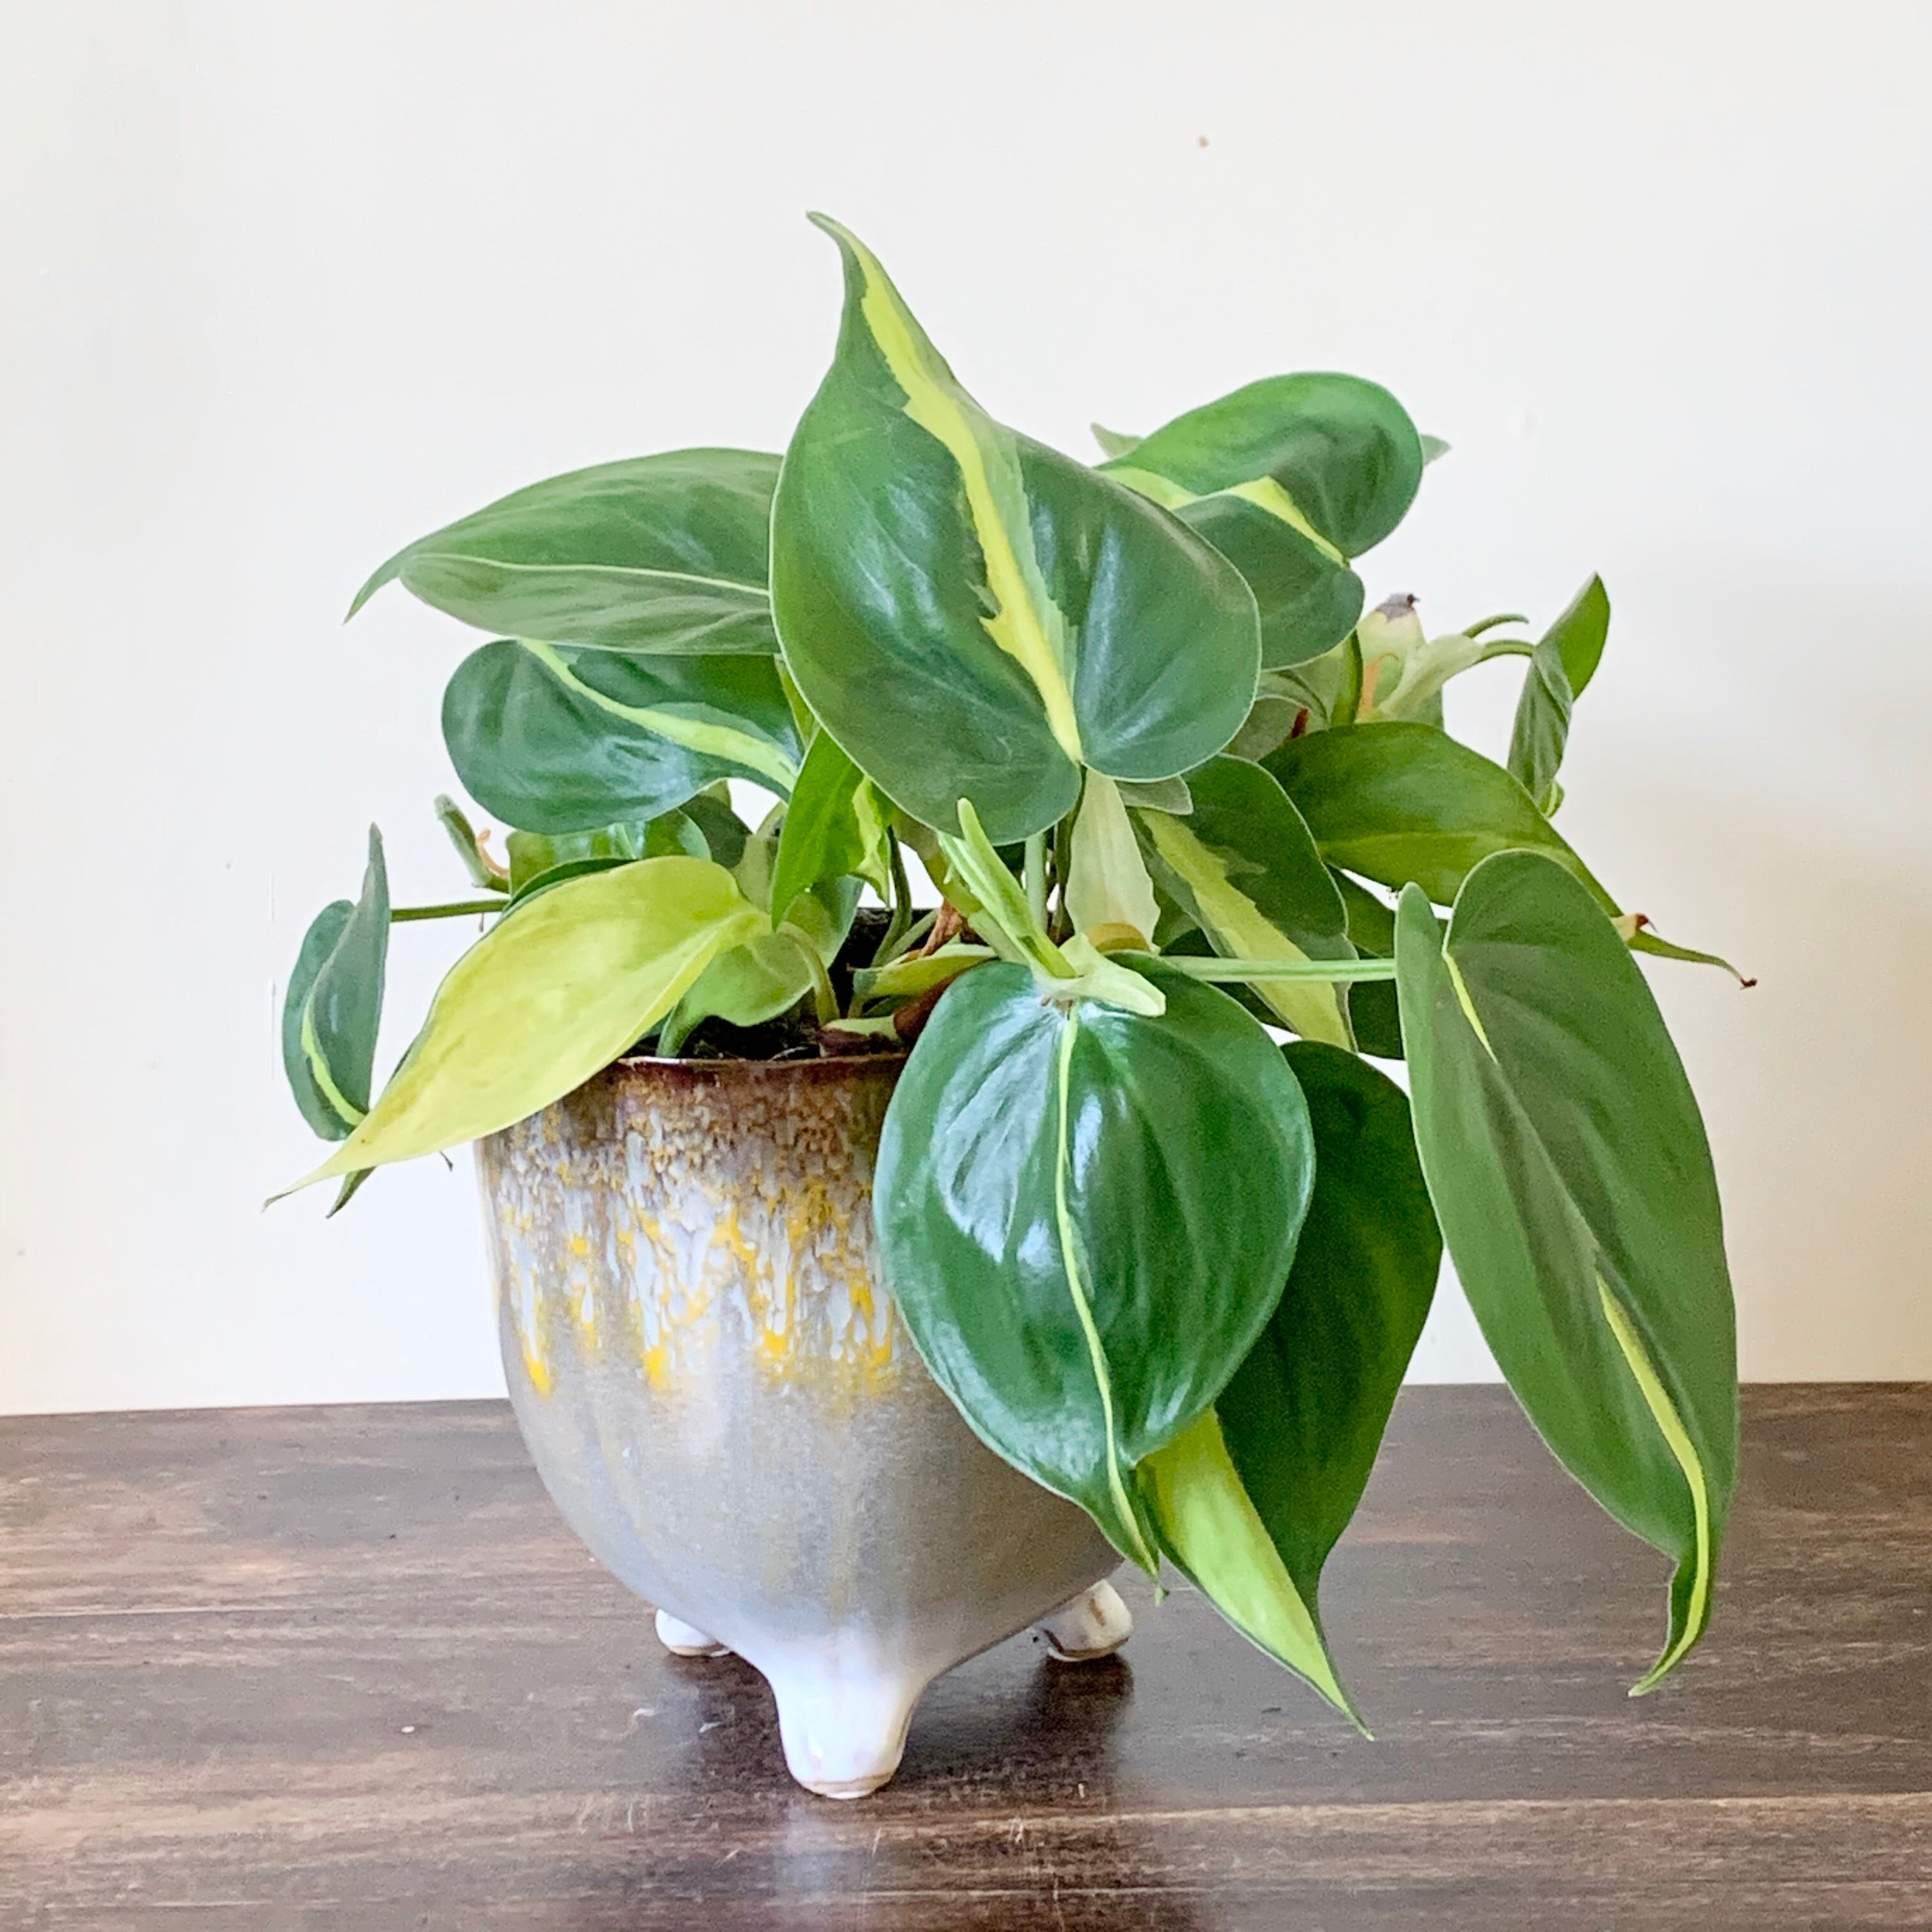 Sweetheart Plant - Philodendron scandens Brasil